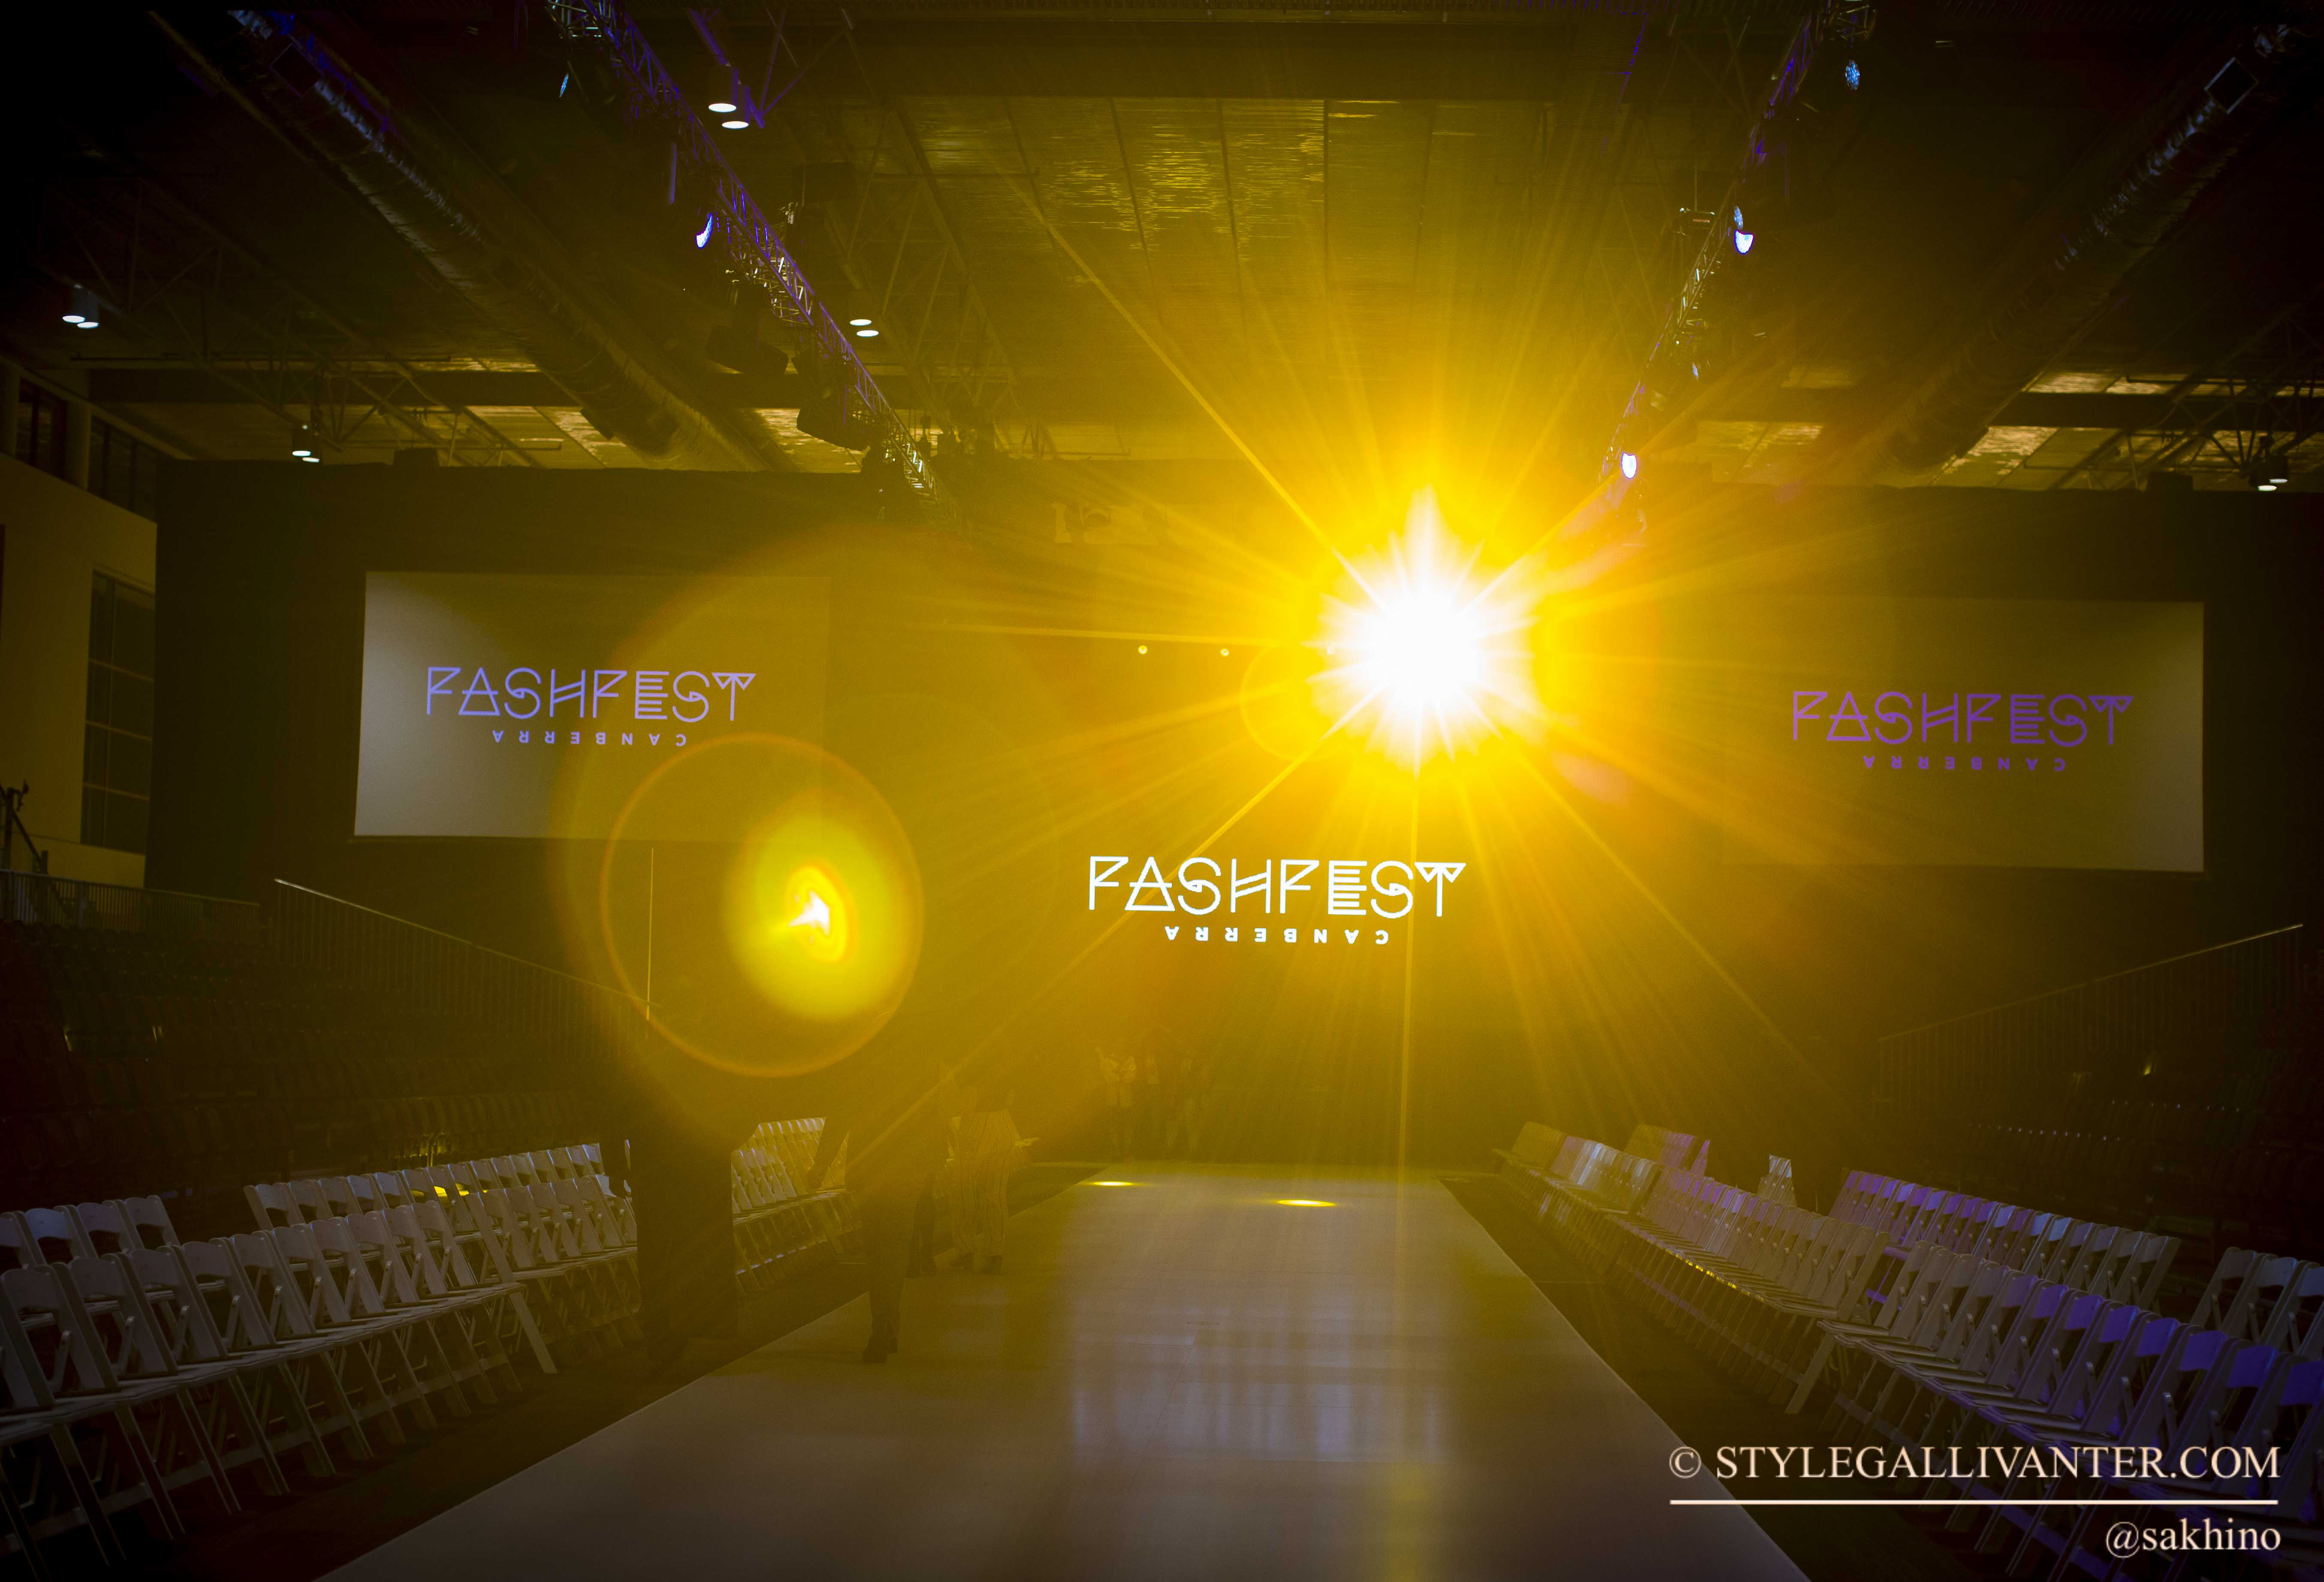 FASHFEST-2015-HIGHLIGHTS_fashfest-2015-the-label_fashfest2015-mimetic_canberra-fashion-week-2015_mirandasakhino-fashfest-miranda-sakhino-resort-collection_miranda-sakhino-fashfest-17